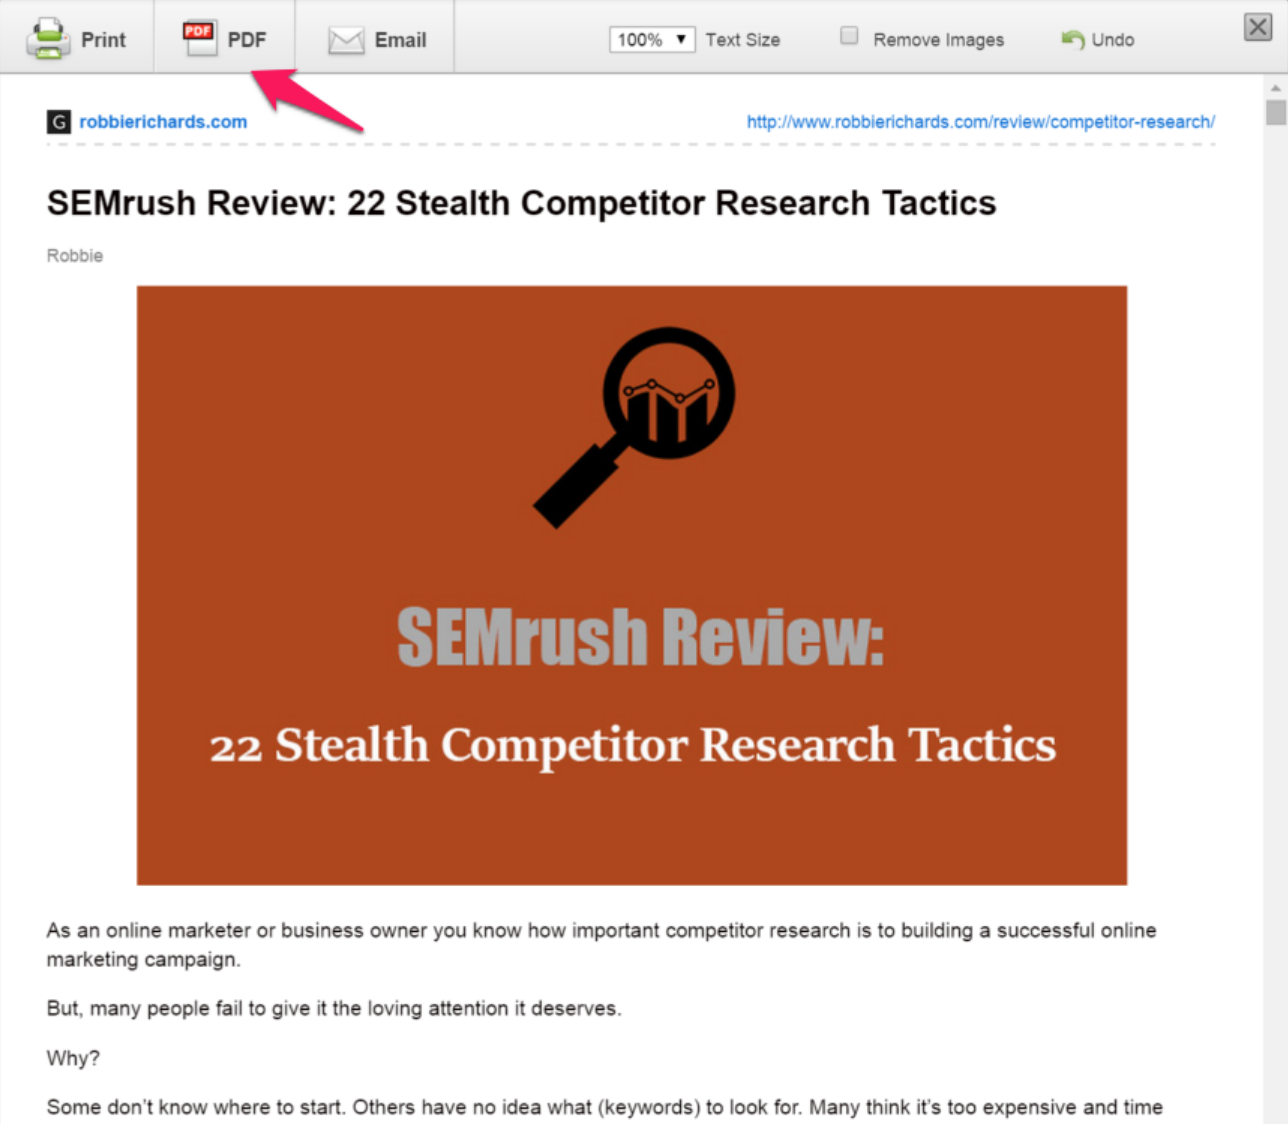 Screenshot showing a SEMrush review page